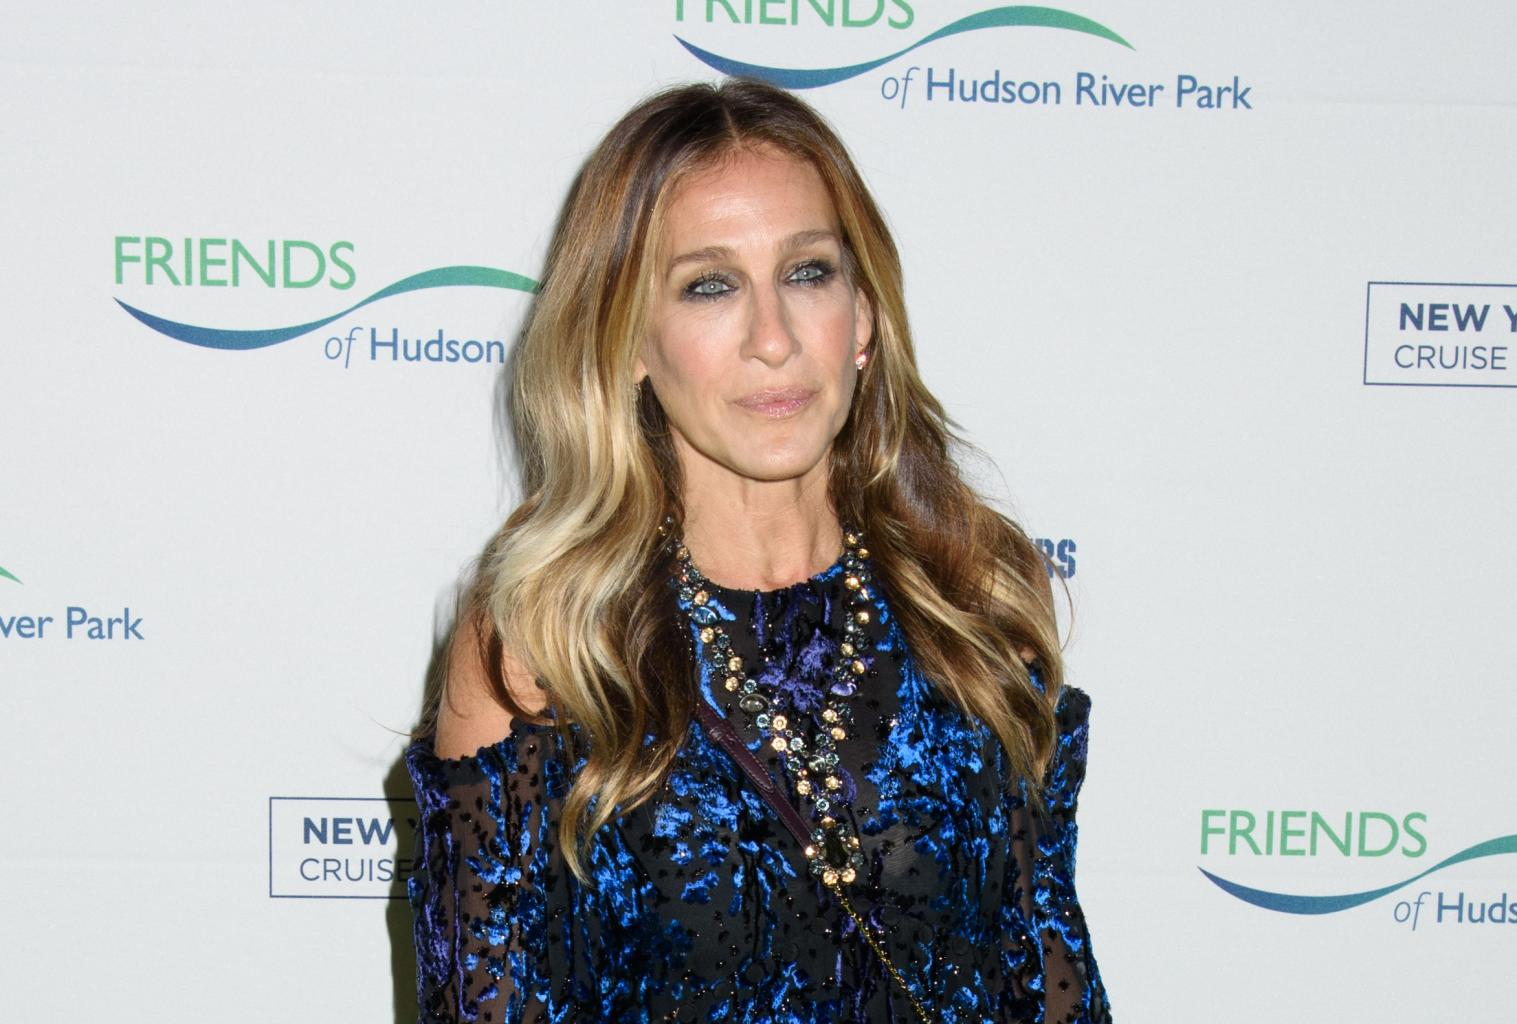 Exclusive: Sarah Jessica Parker Says She Wants To Make        Hocus Pocus      '  And        Sex And The City      '  Sequels